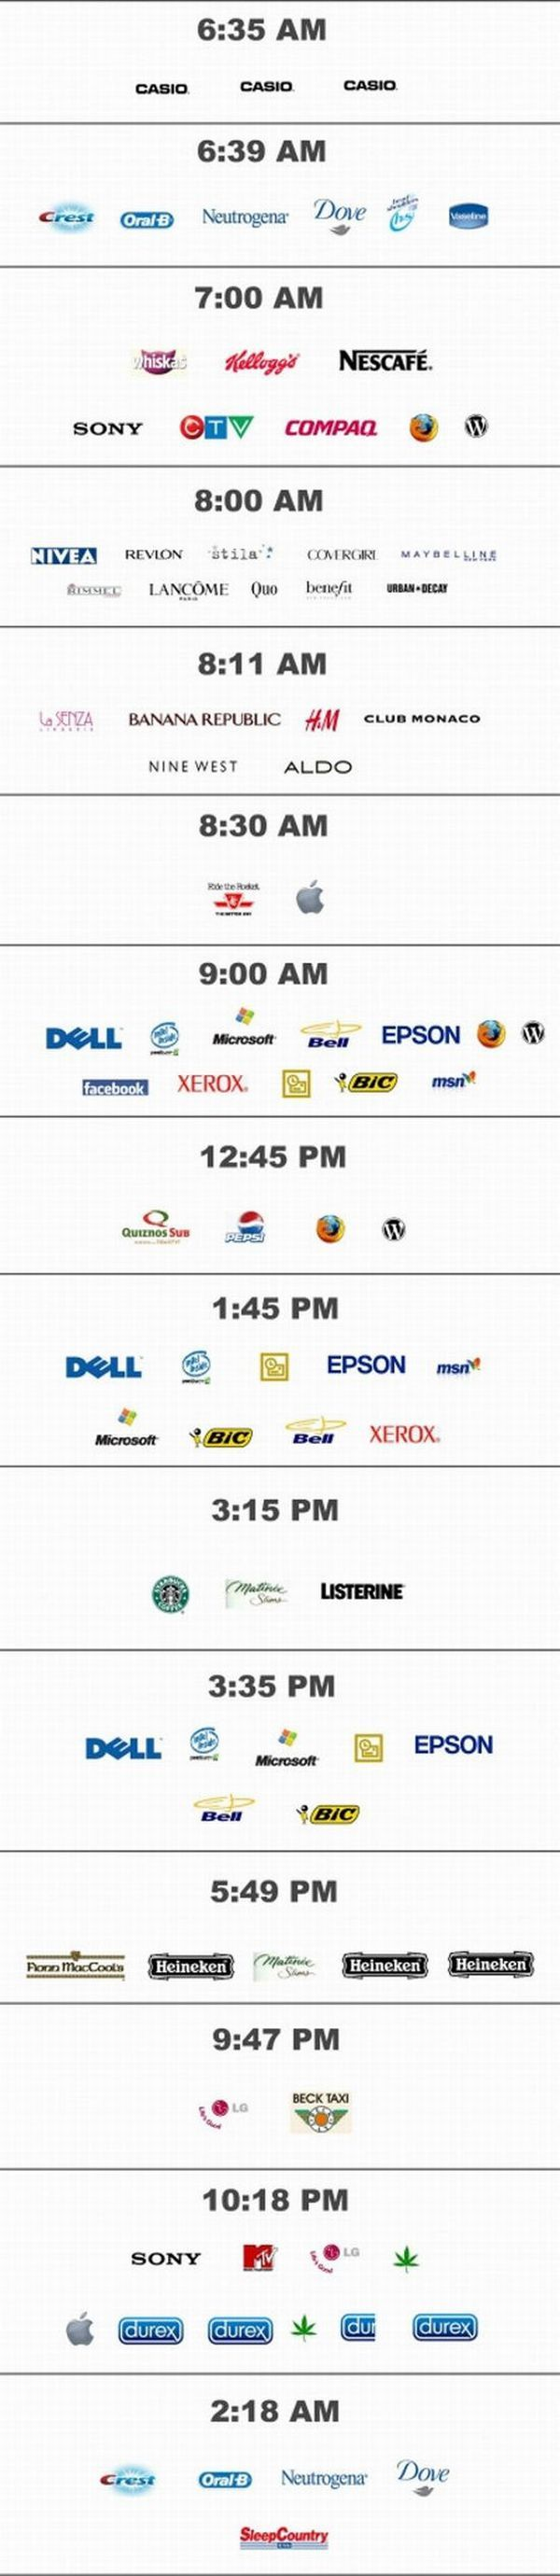 Illustration of a day schedule in famous logos